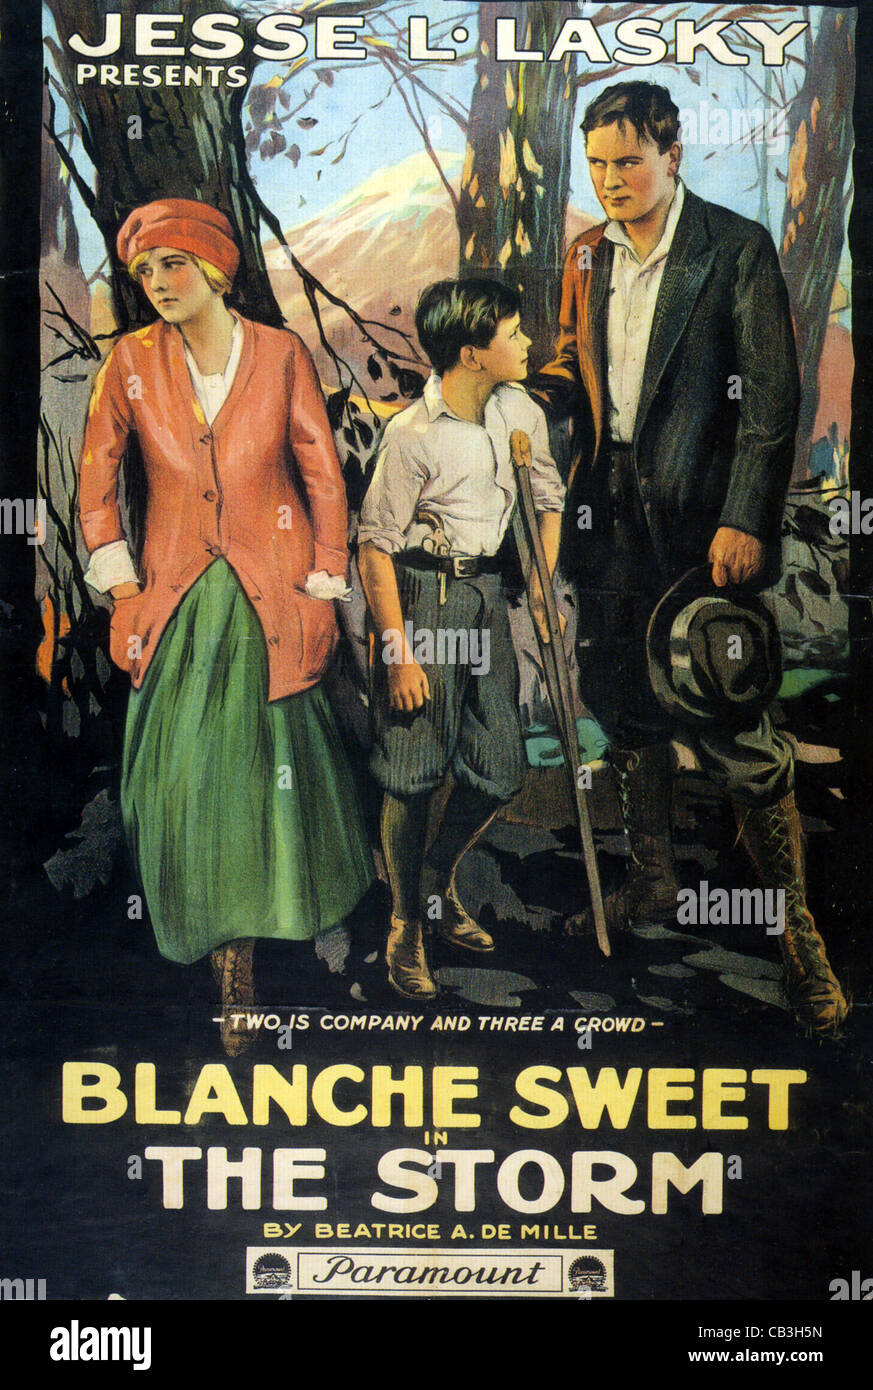 THE STORM Poster for 1916 Paramount silent film with Blanche Sweet - Stock Image